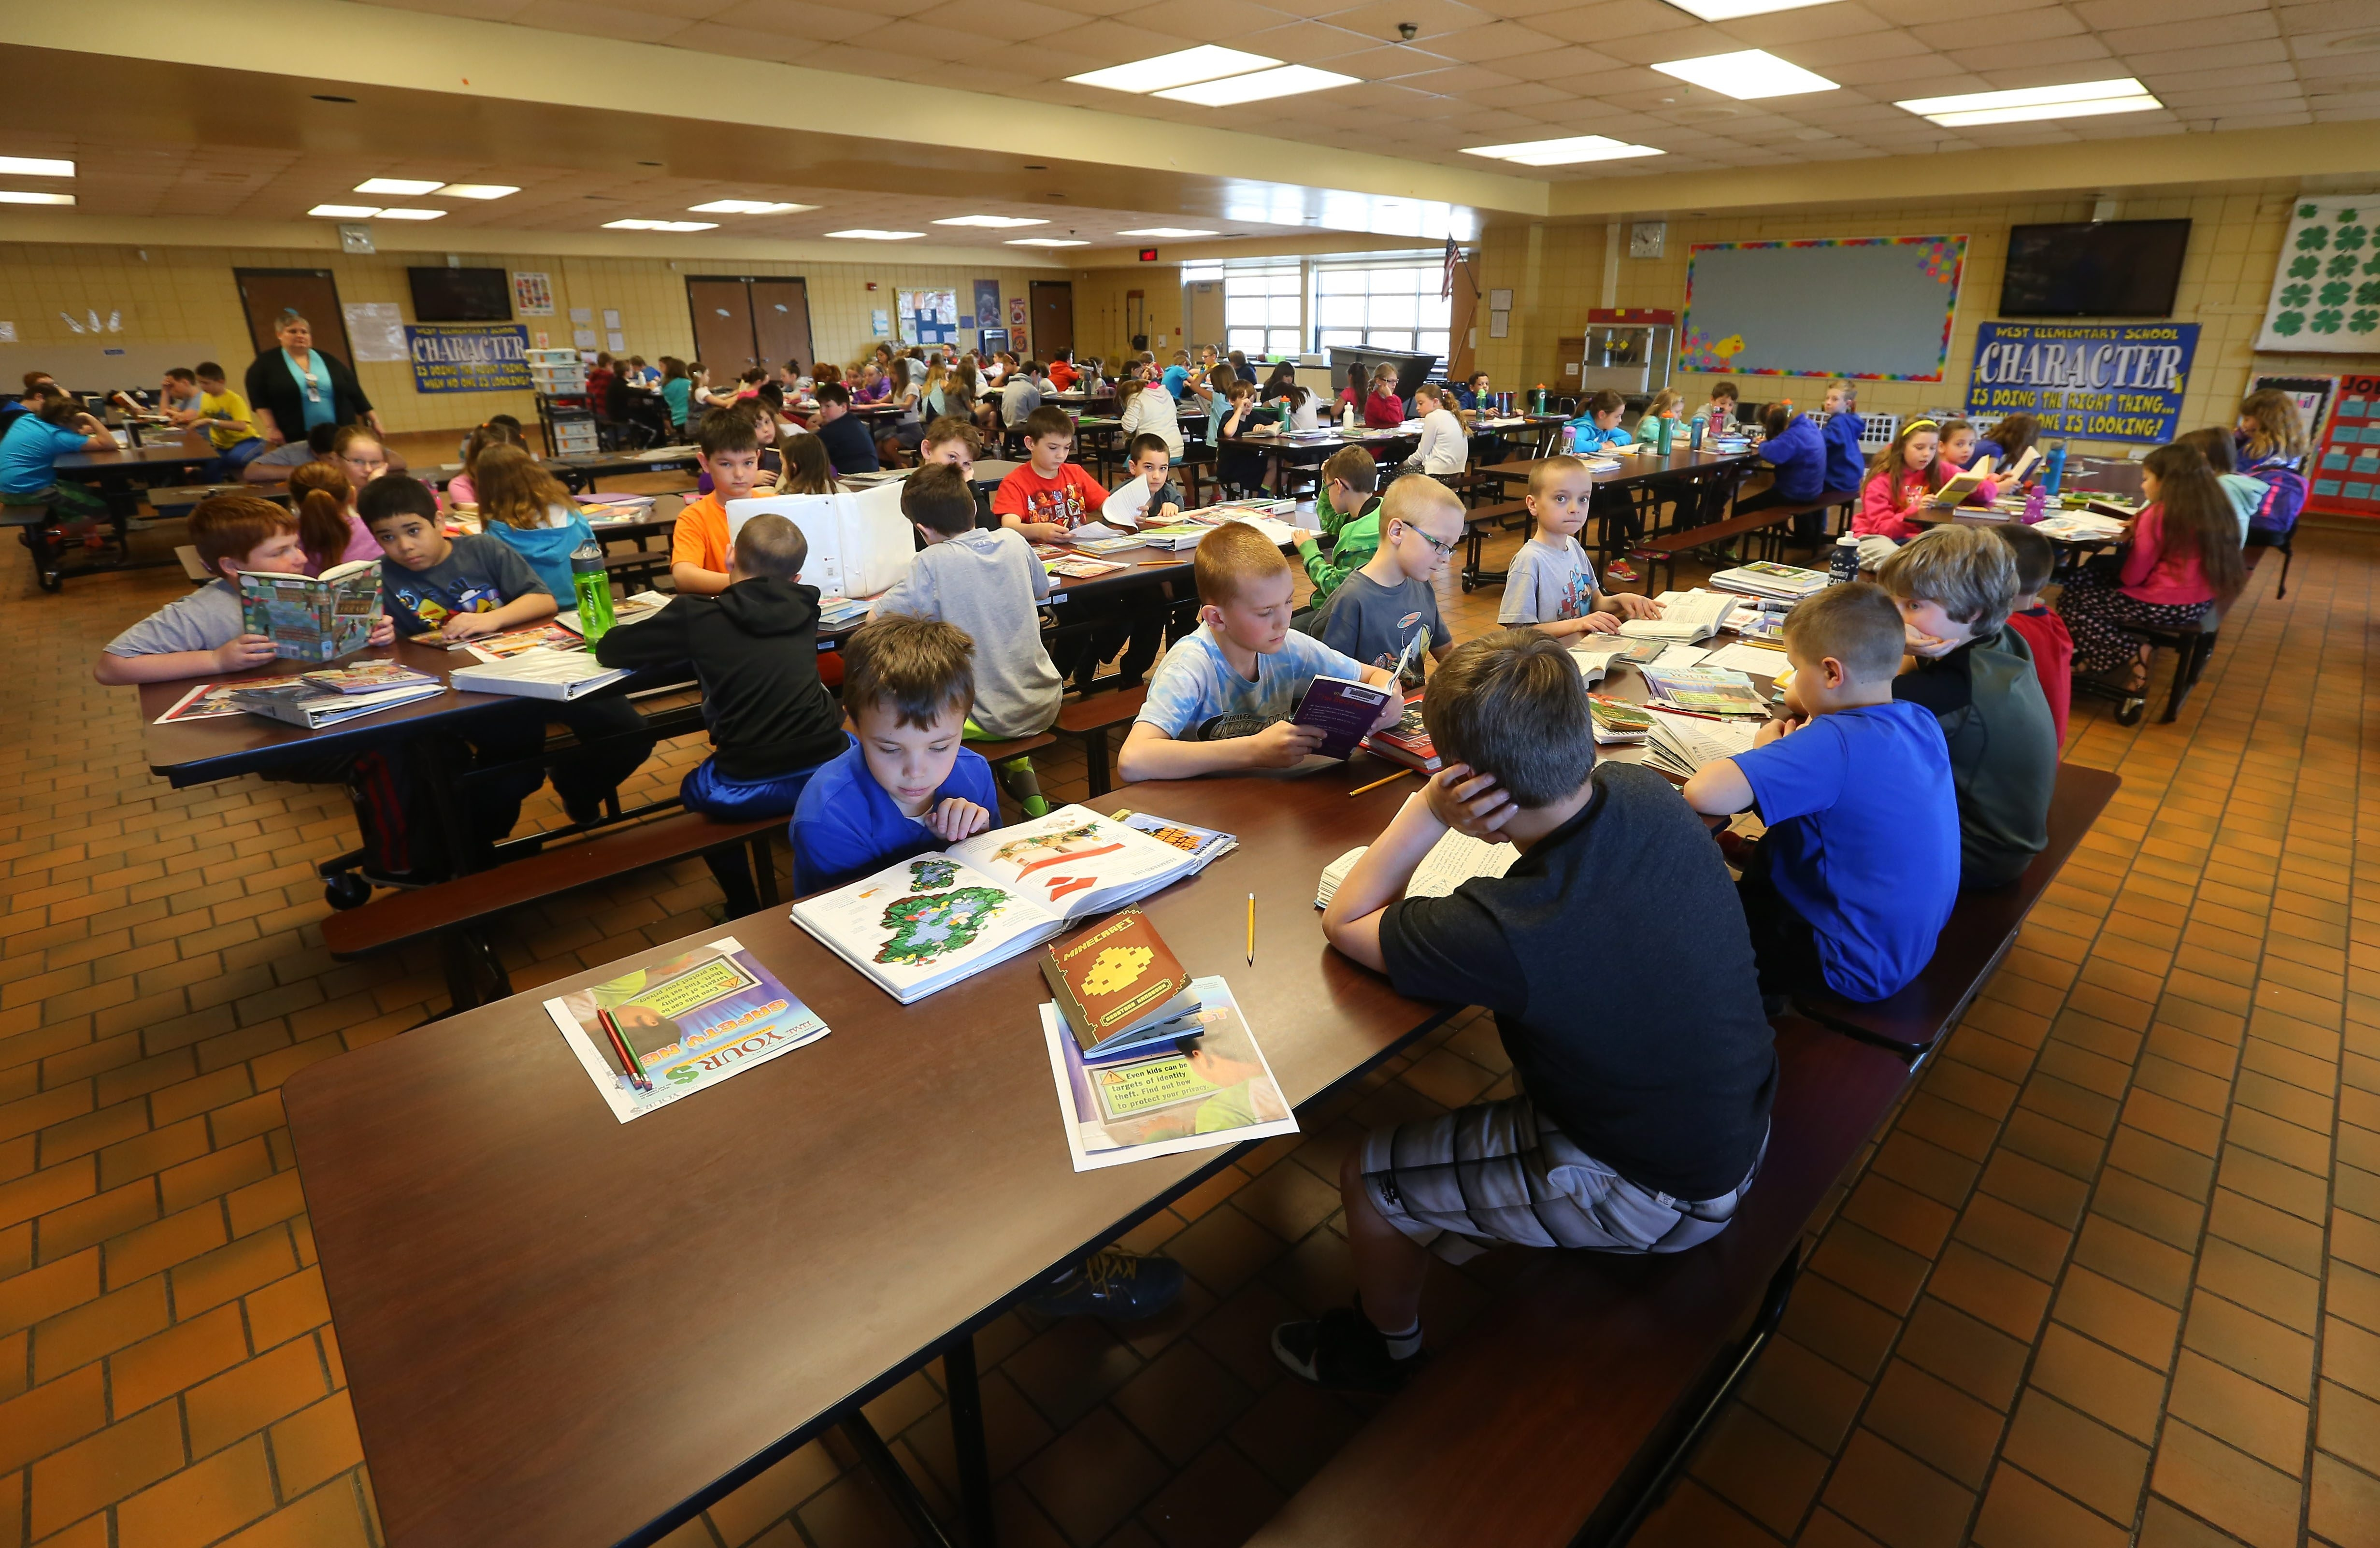 Students opting out of state testing last year filled the cafeteria at West Elementary in West Seneca. (Mark Mulville/Buffalo News file photo)